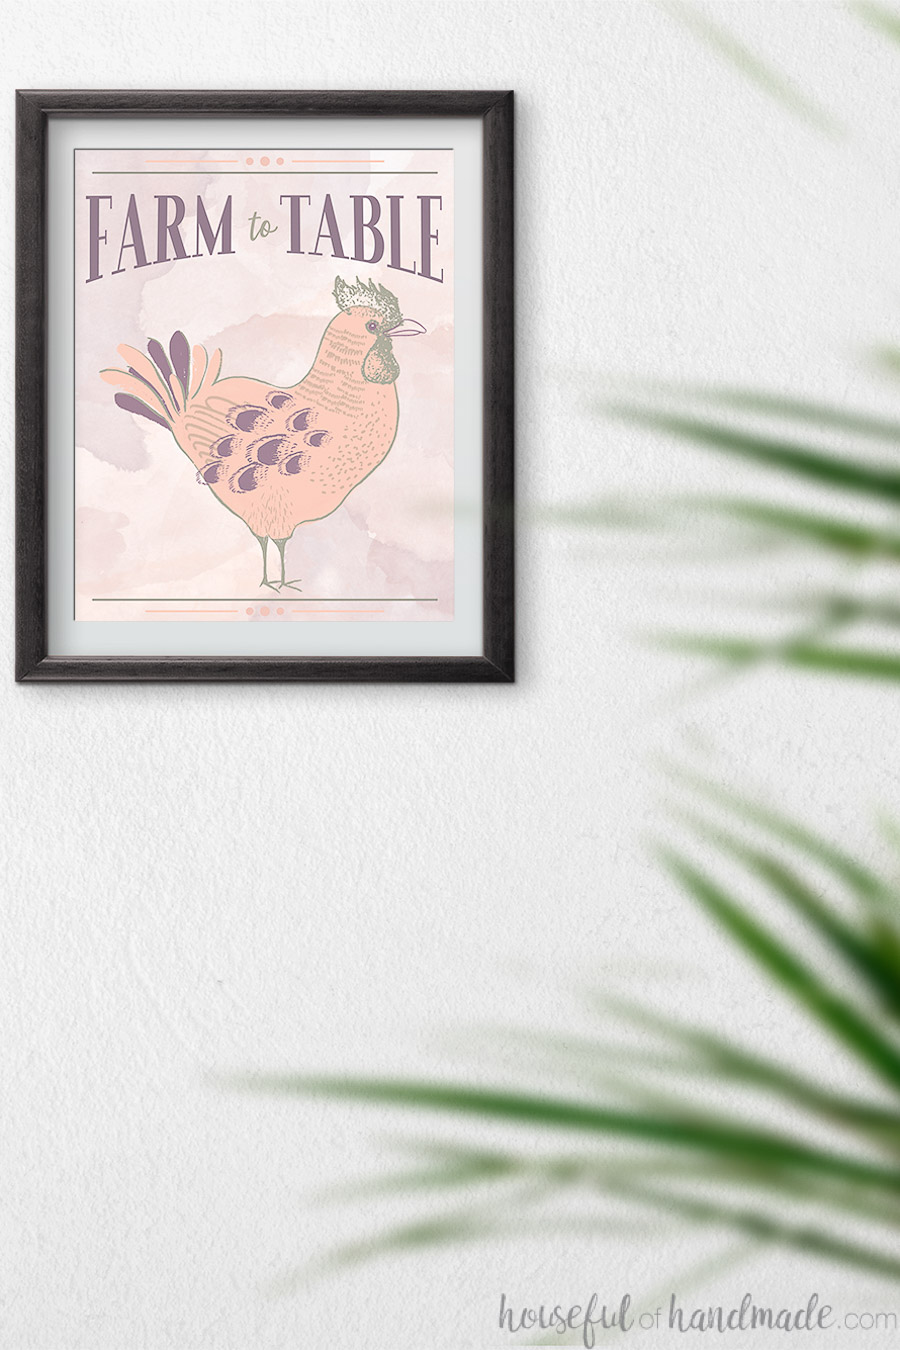 Farm to table spring printable hanging in a frame on the wall behind a plant.